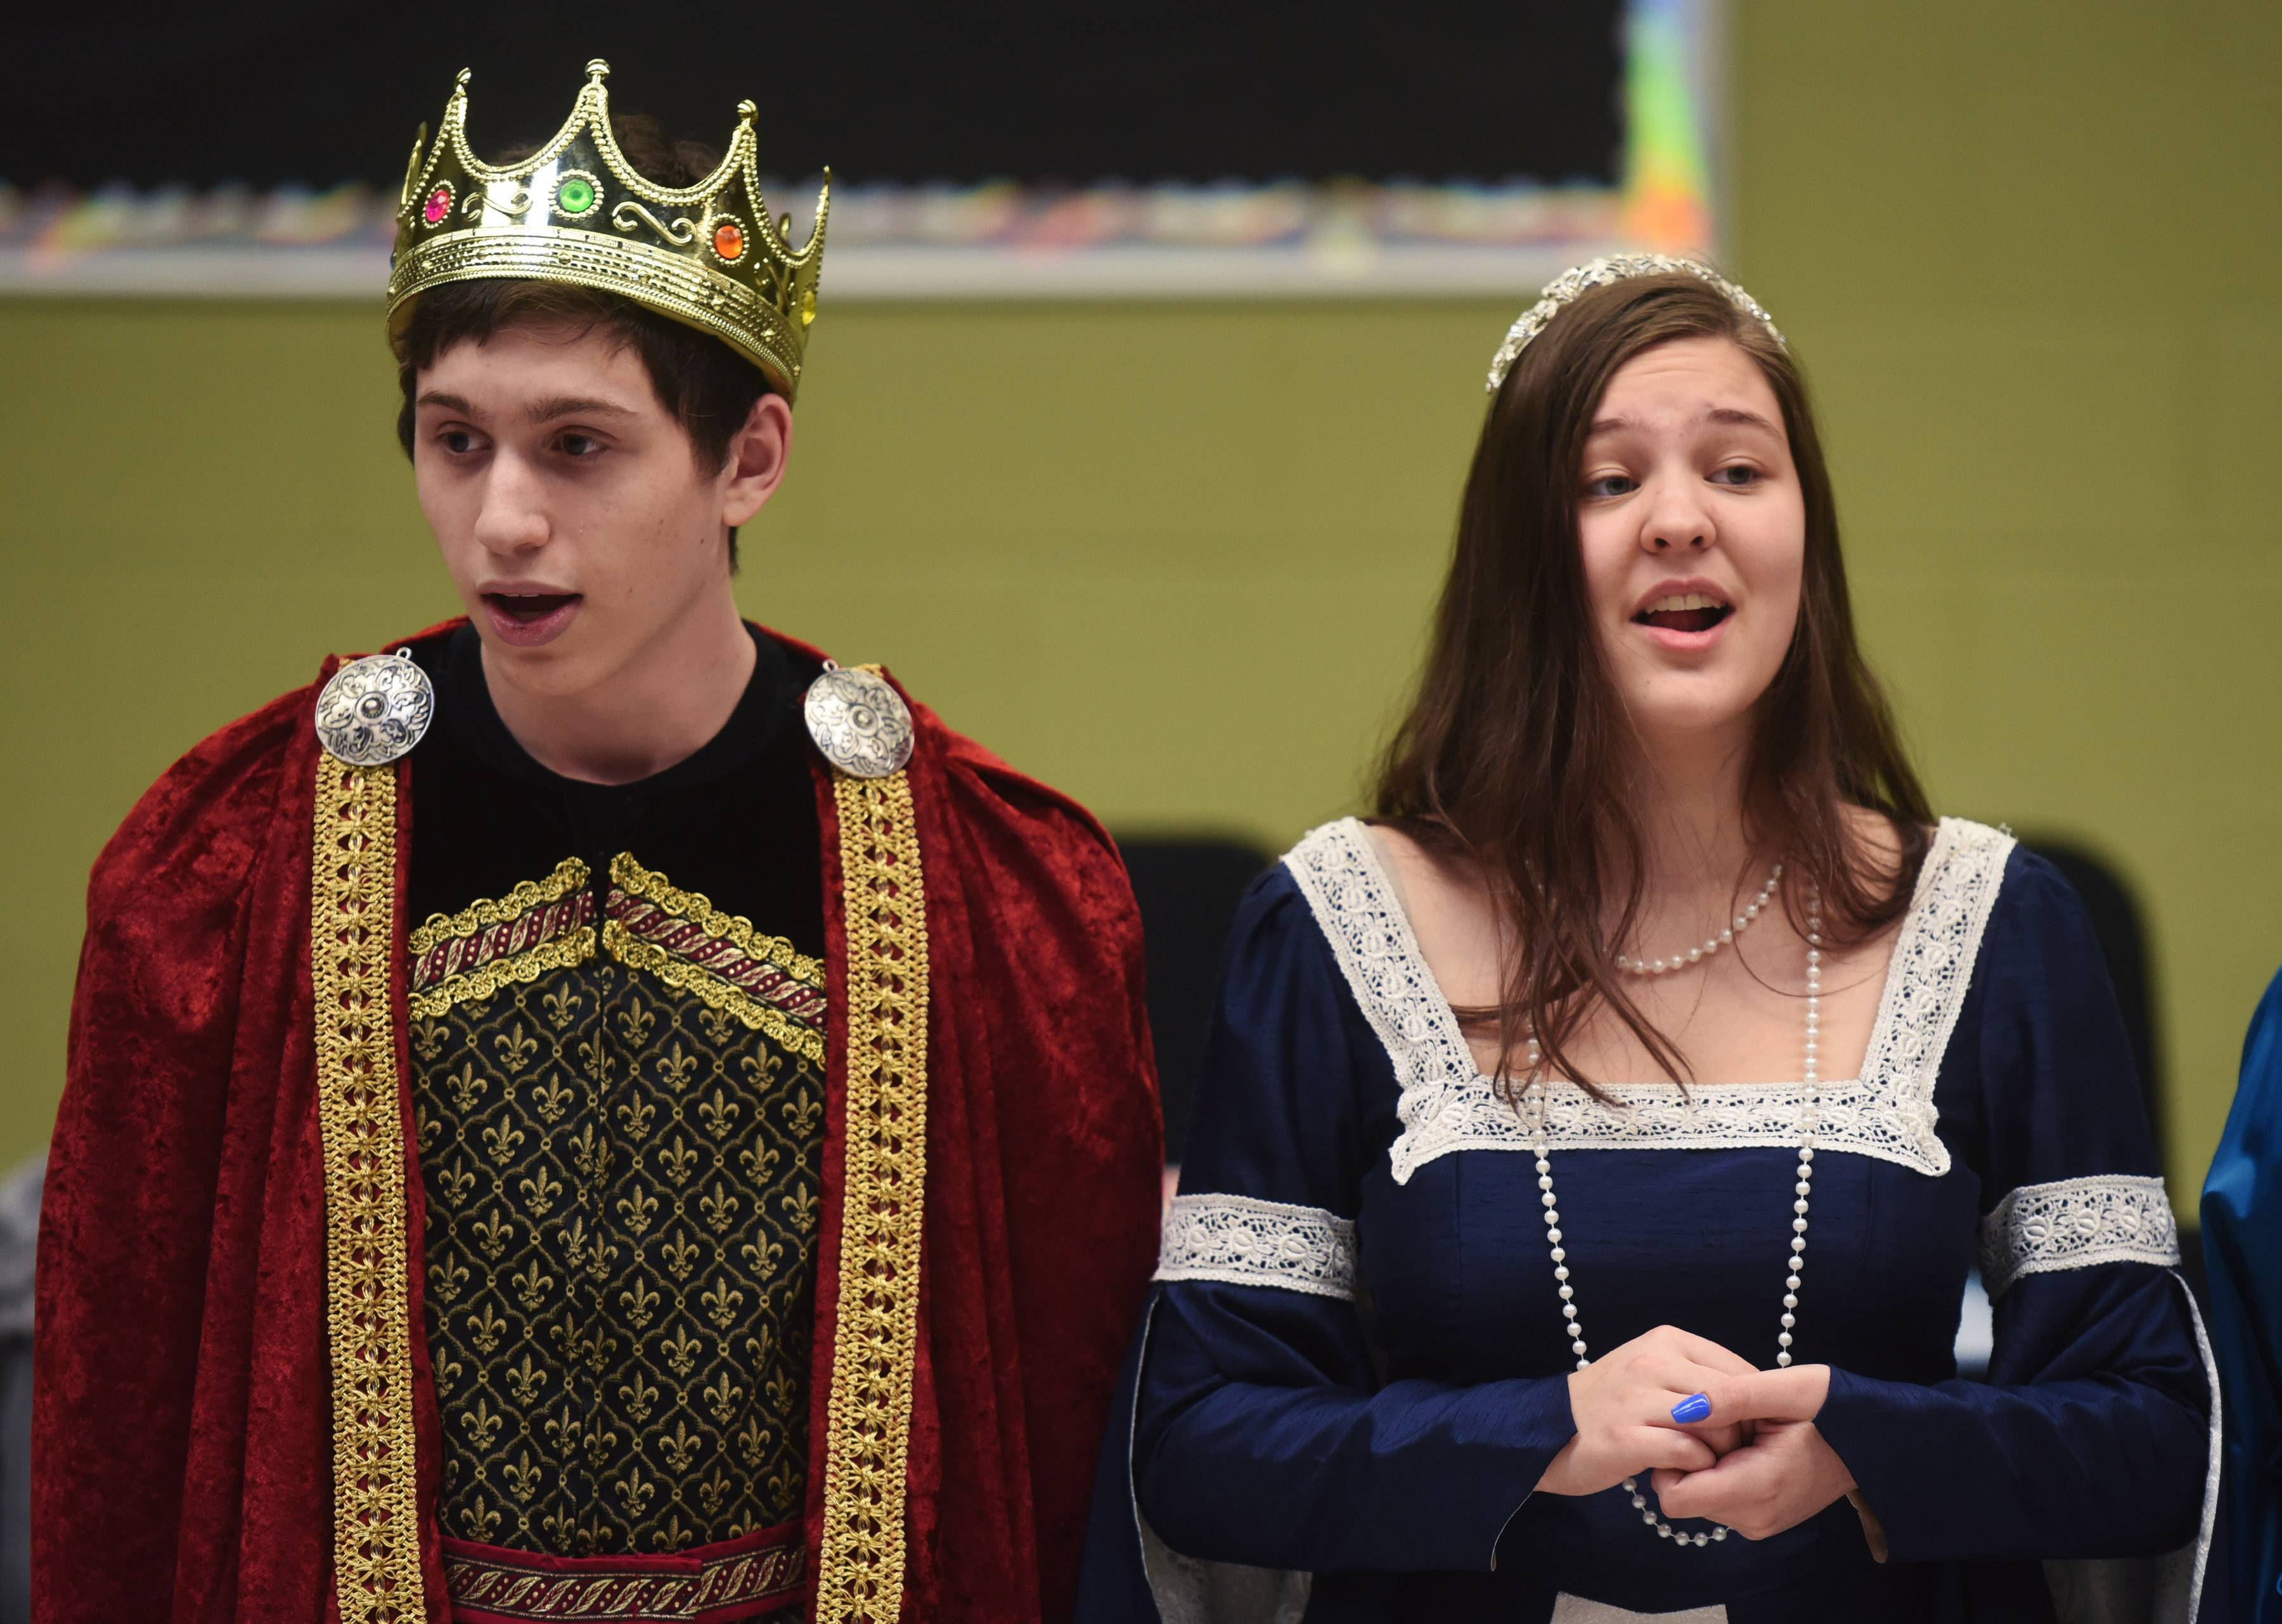 Nick Filerman, left, who plays King Fletcher, and Donna Ilyukh, who plays Queen Ivy, sing during a dress rehearsal Tuesday for the Stevenson High School Madrigal dinner, set for Sunday in Buffalo Grove.